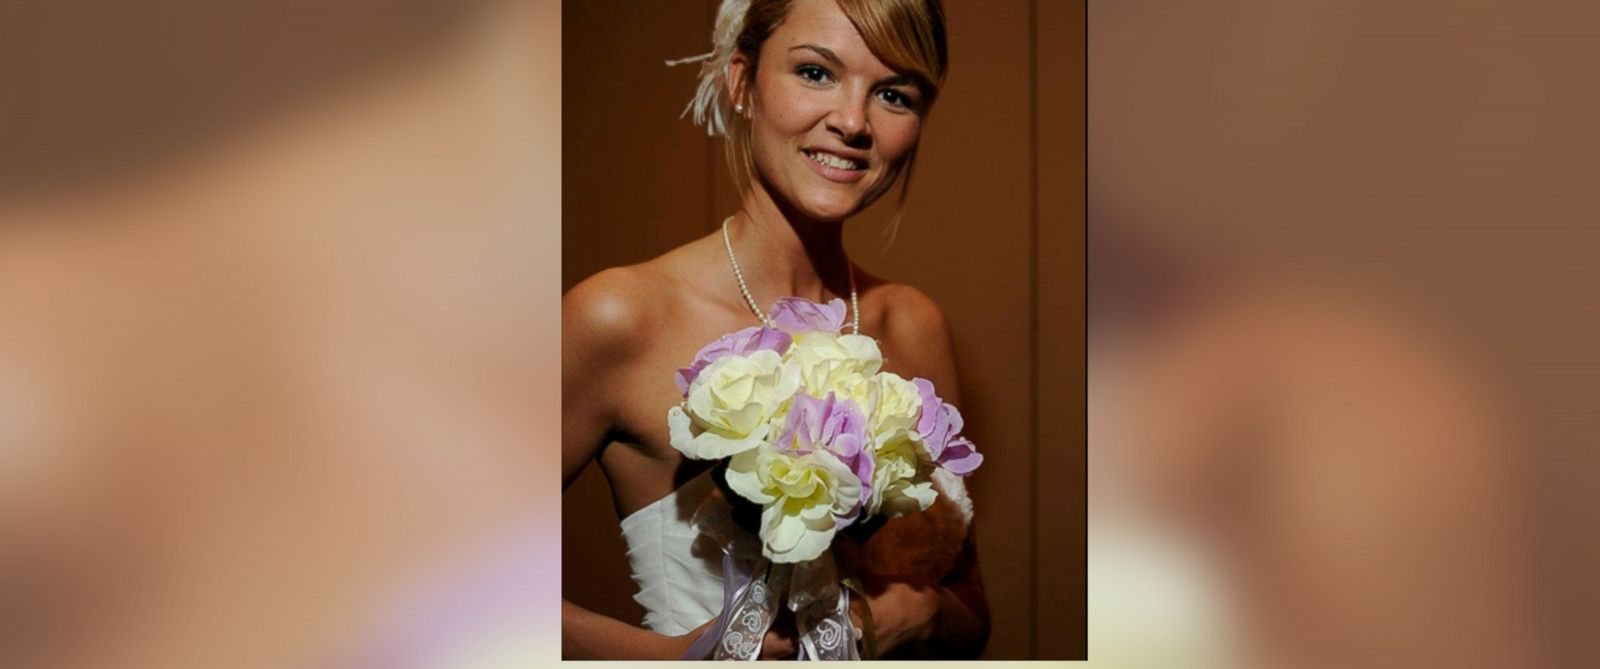 PHOTO: Jenna Hinman, seen in this undated photo posted to her Facebook community page, Prayers for Jenna, lost the fight against a rare form of cancer.